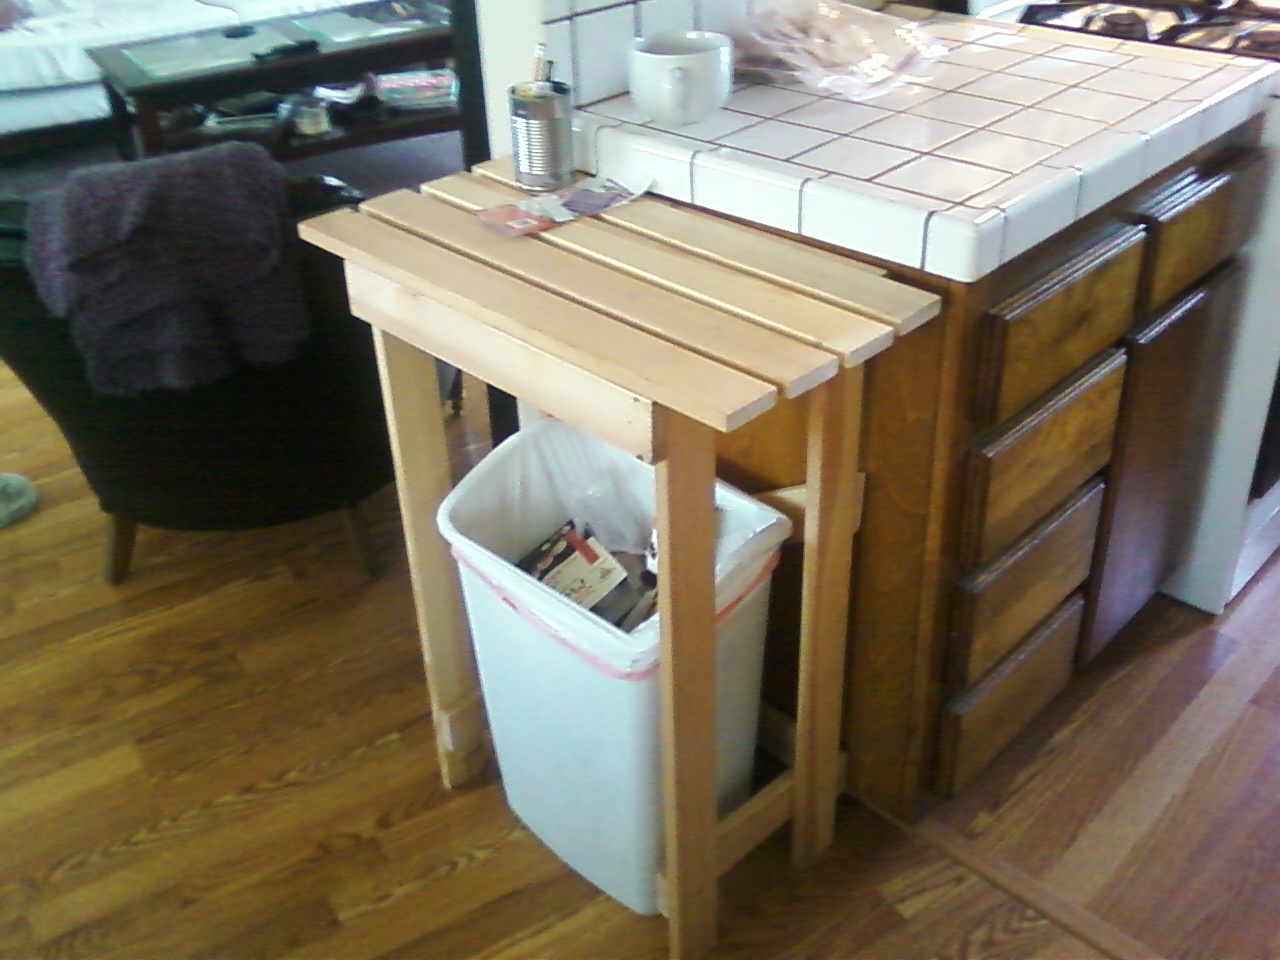 Simple Kitchen Island Simple Kitchen Island From Bed Slats Ikea Hackers Ikea Hackers